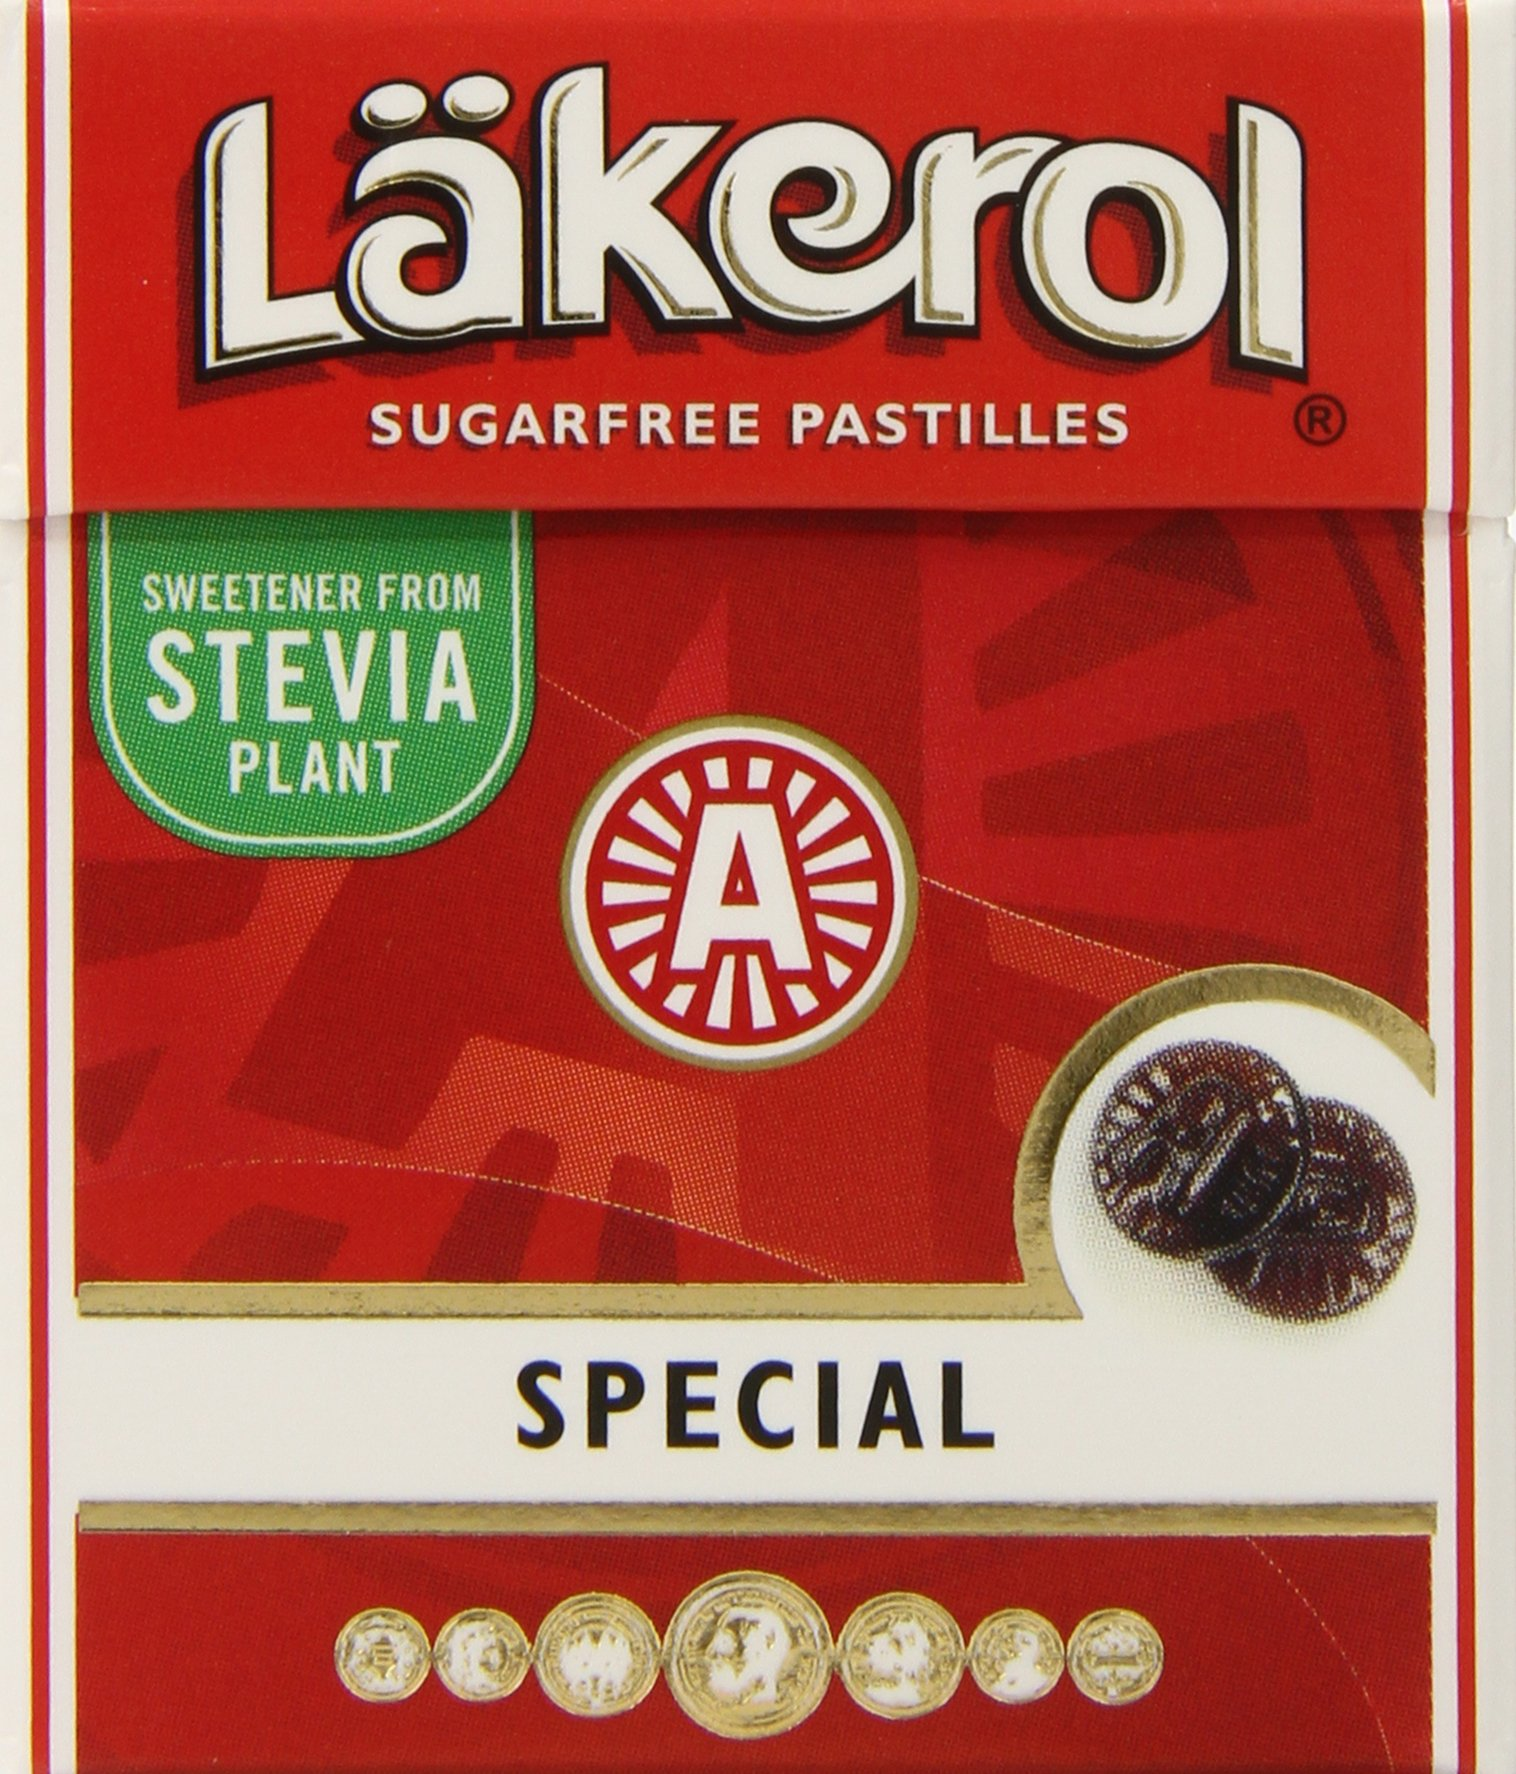 Lakerol Special Menthol Licorice Sugar Free Pastilles, .8 Ounce (Pack of 24) by Lakerol